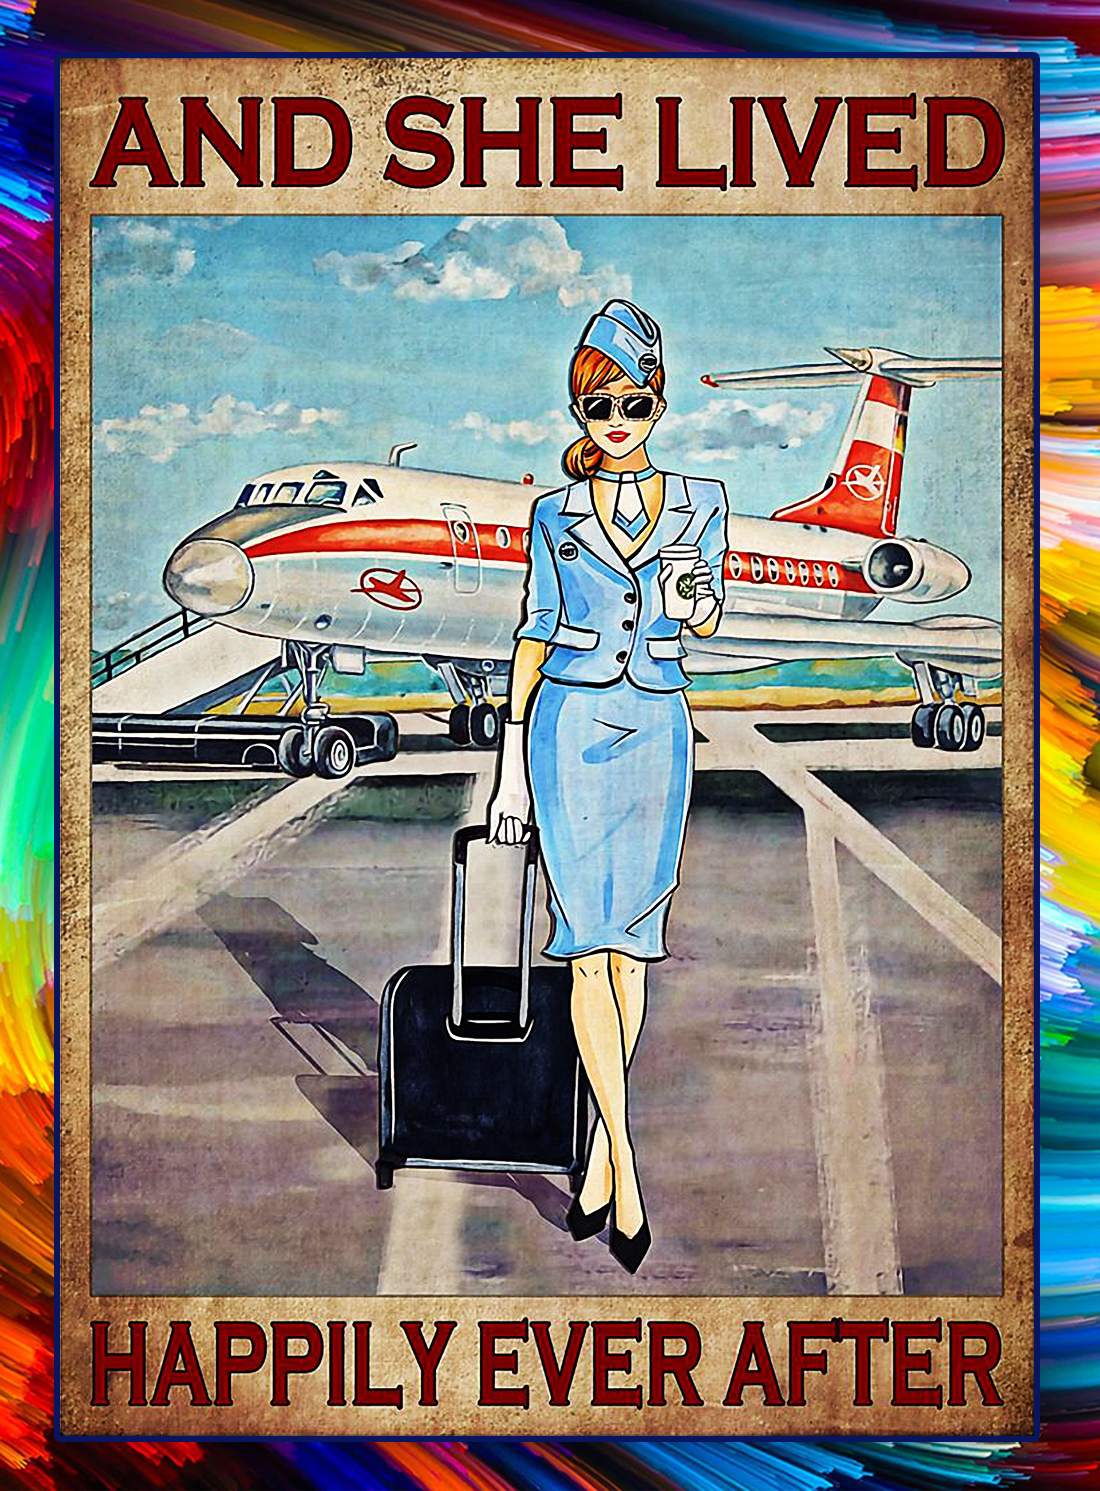 And She Lived Happily Ever After Flight Attendant poster